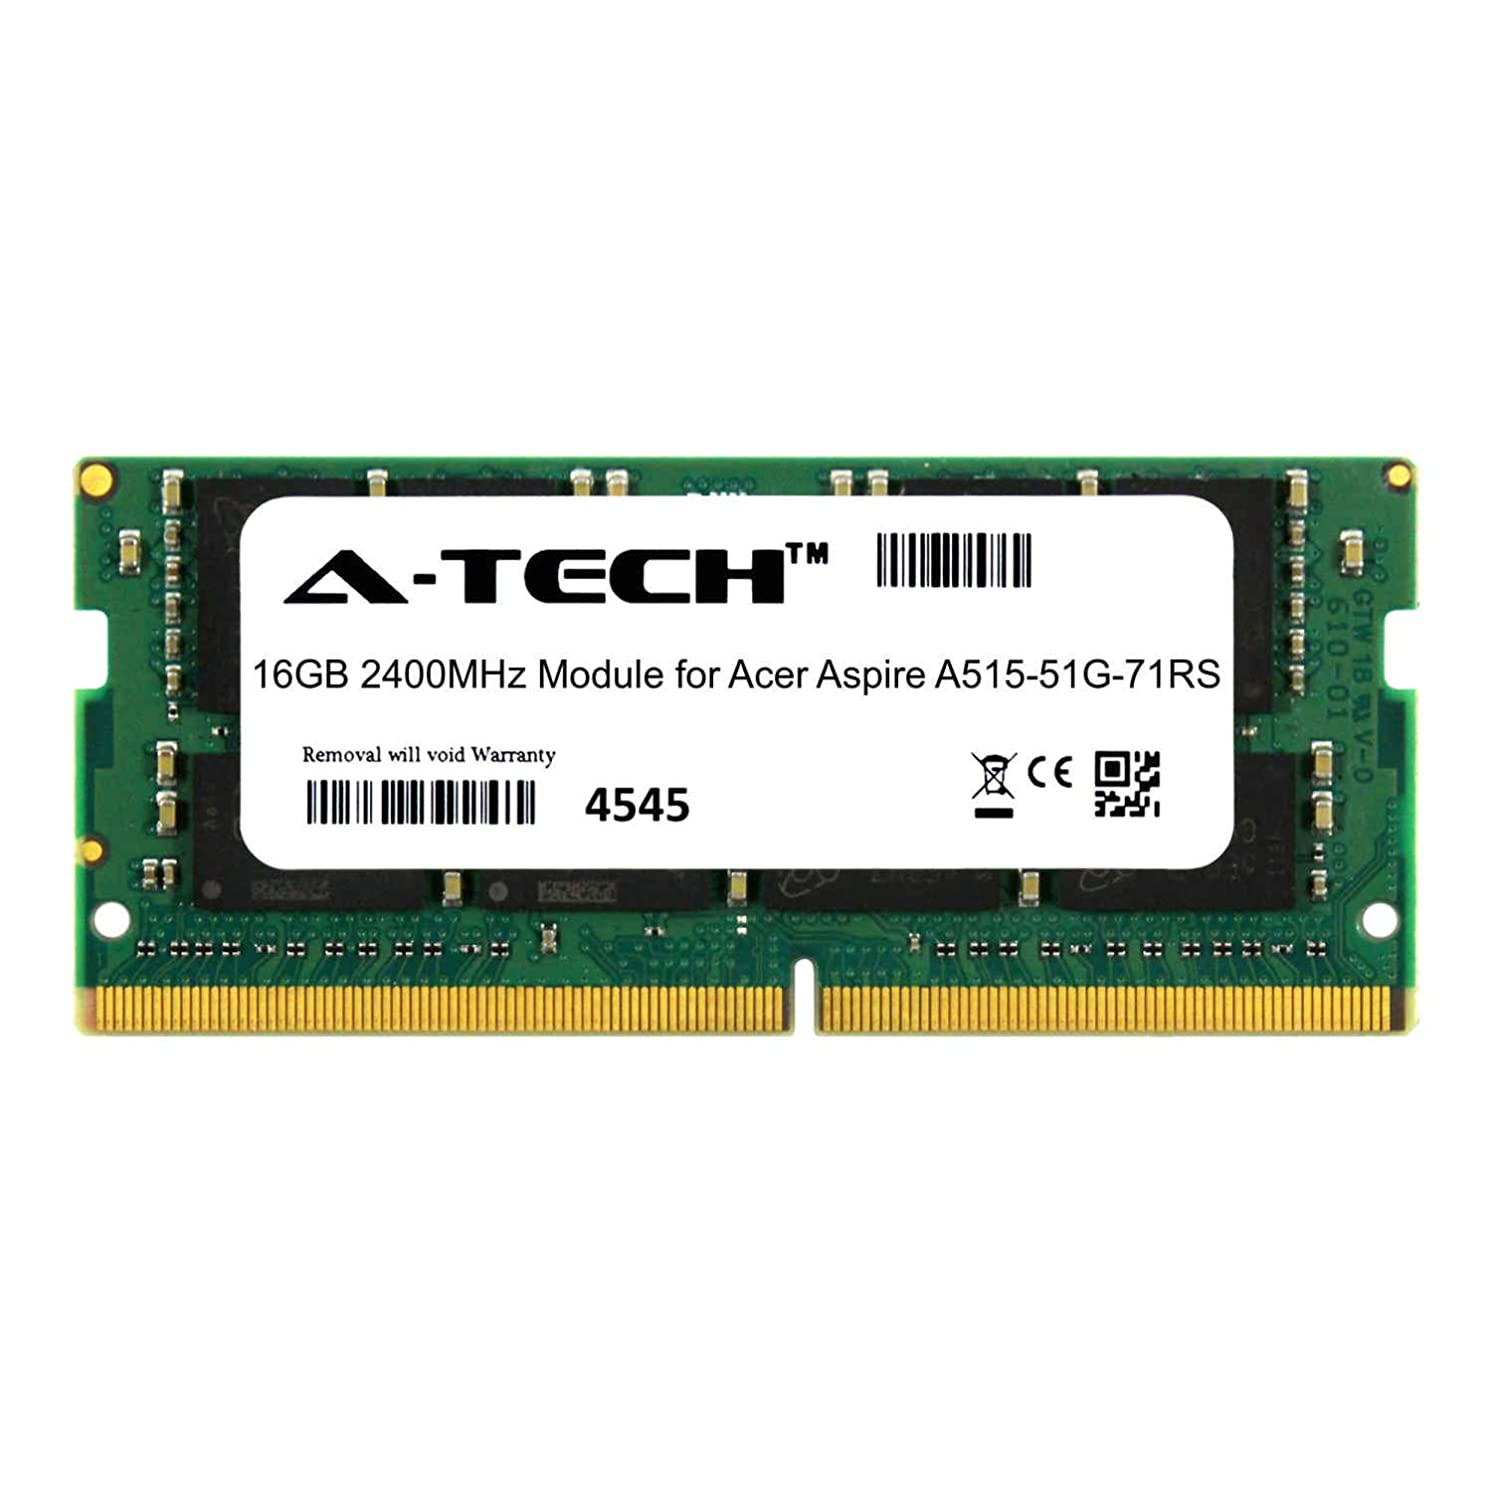 A-Tech 16GB Module for Acer Aspire A515-51G-71RS Laptop & Notebook Compatible DDR4 2400Mhz Memory Ram (ATMS267760A25831X1)